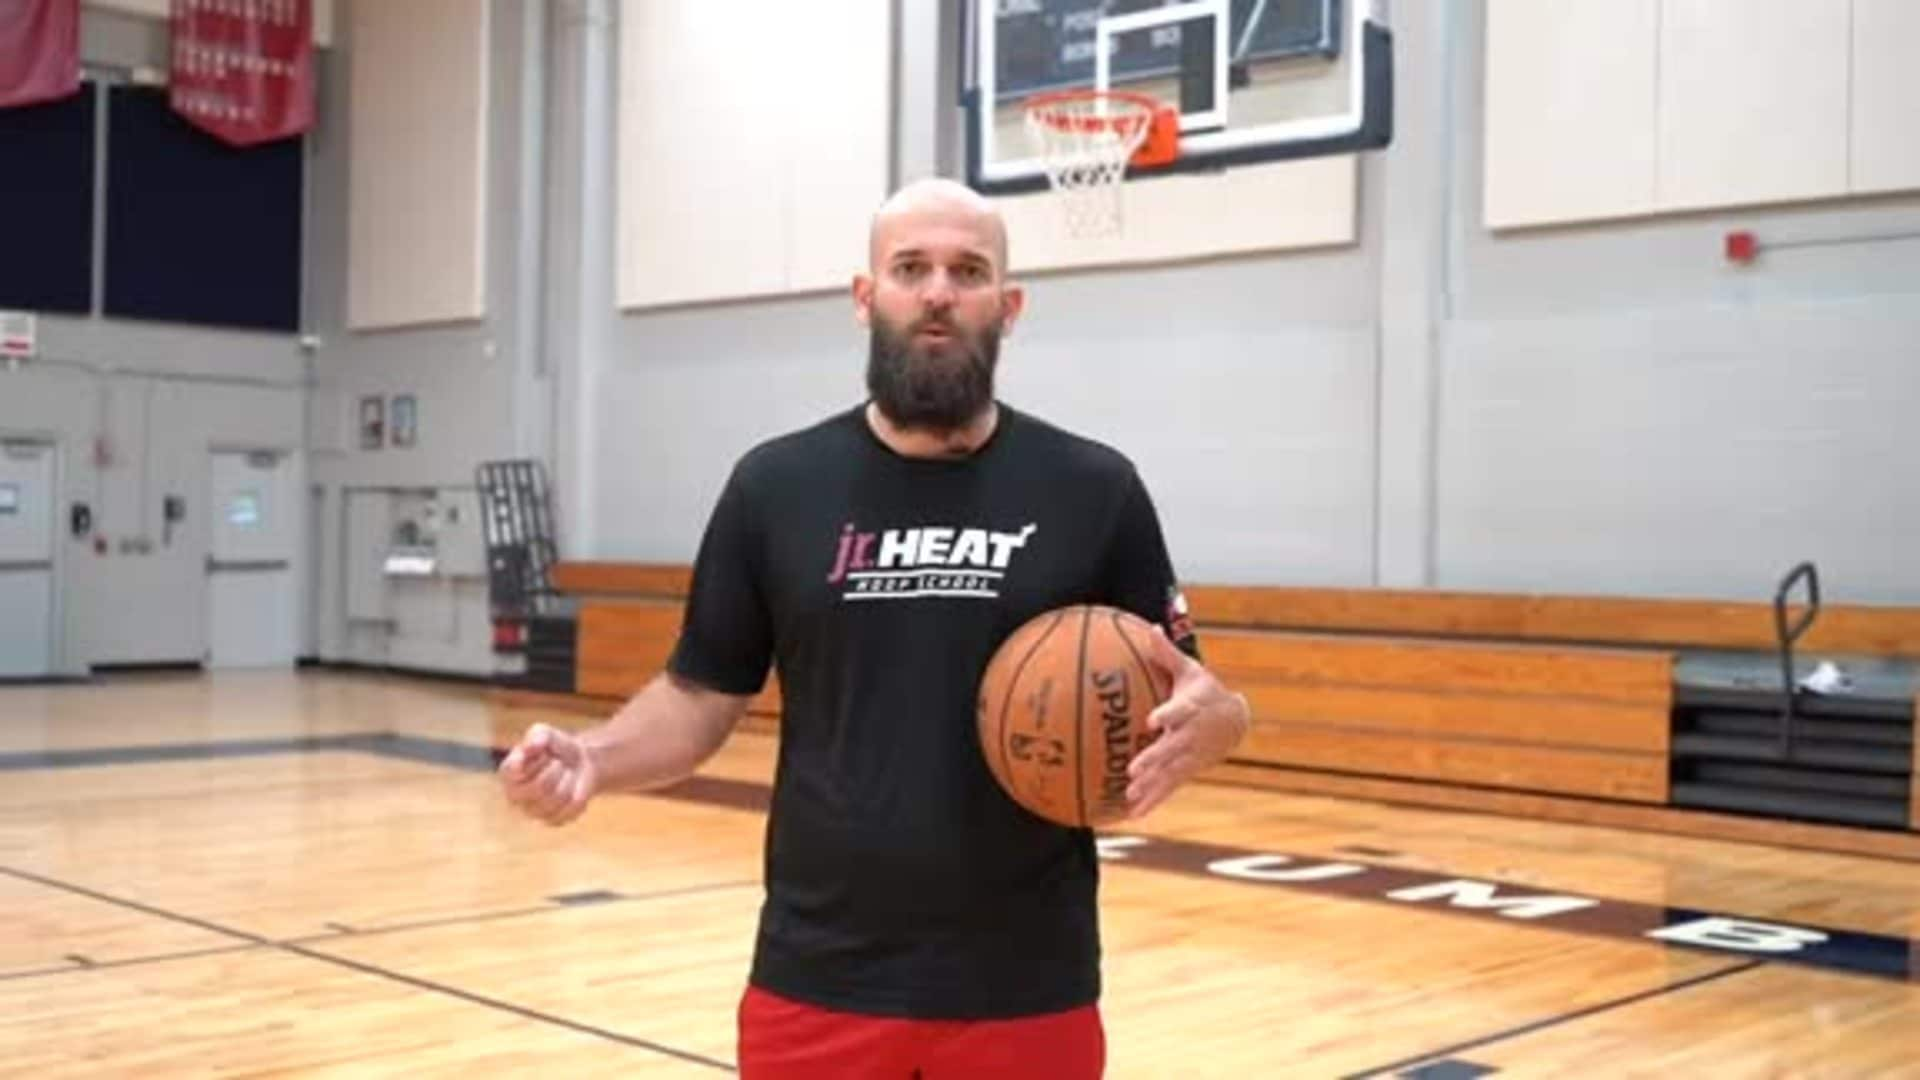 Jr HEAT Camp Gym Ball Handler 3